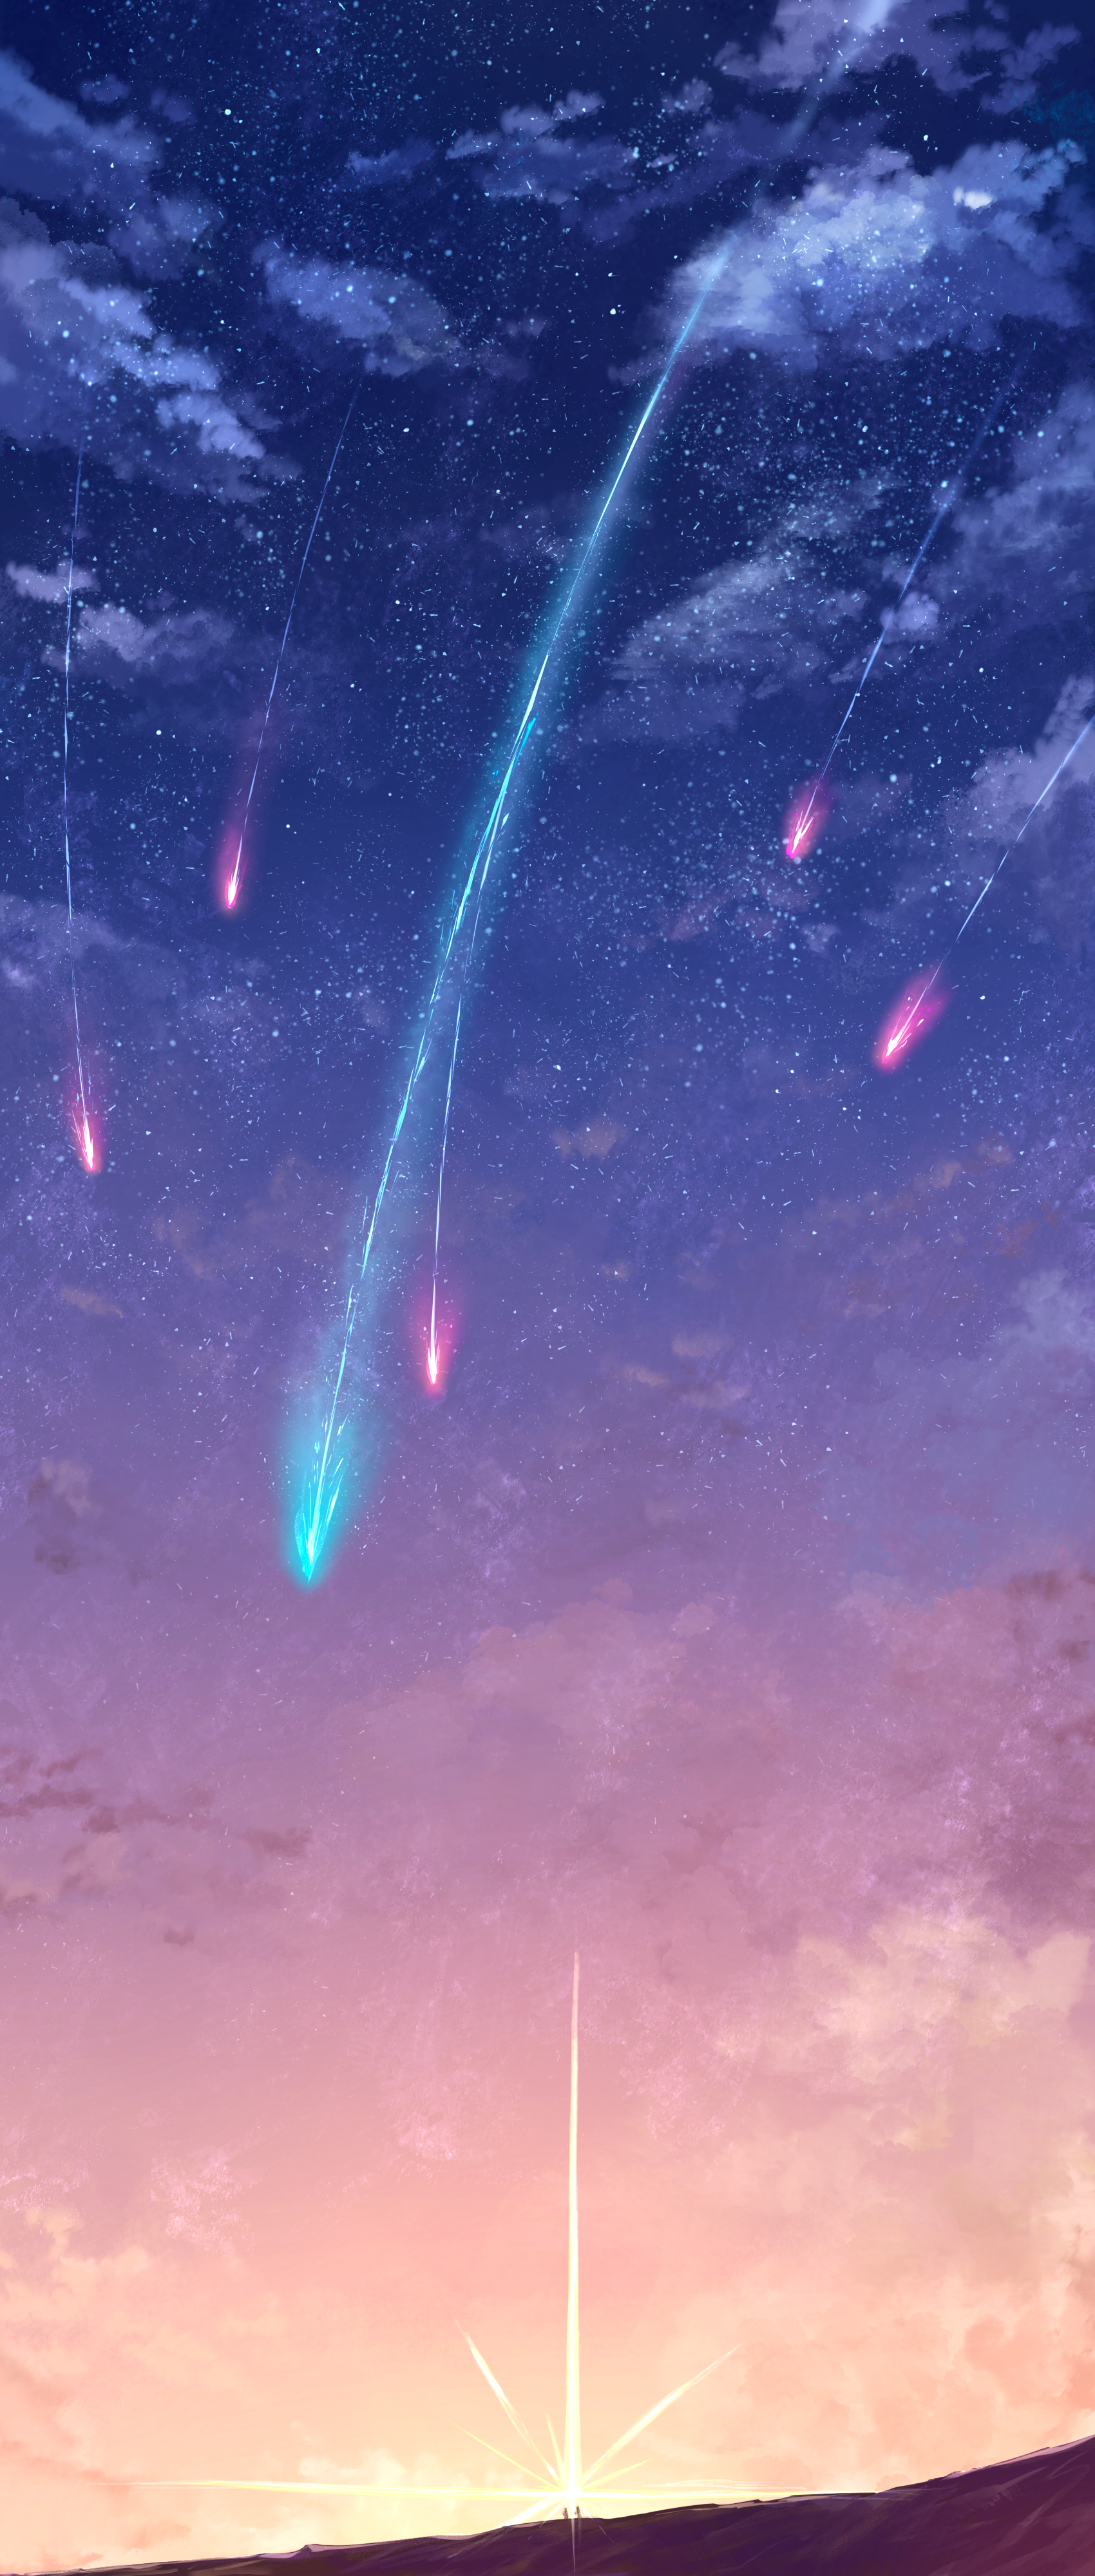 """Omg this looks like art for the movie """"Your Name"""" Your"""